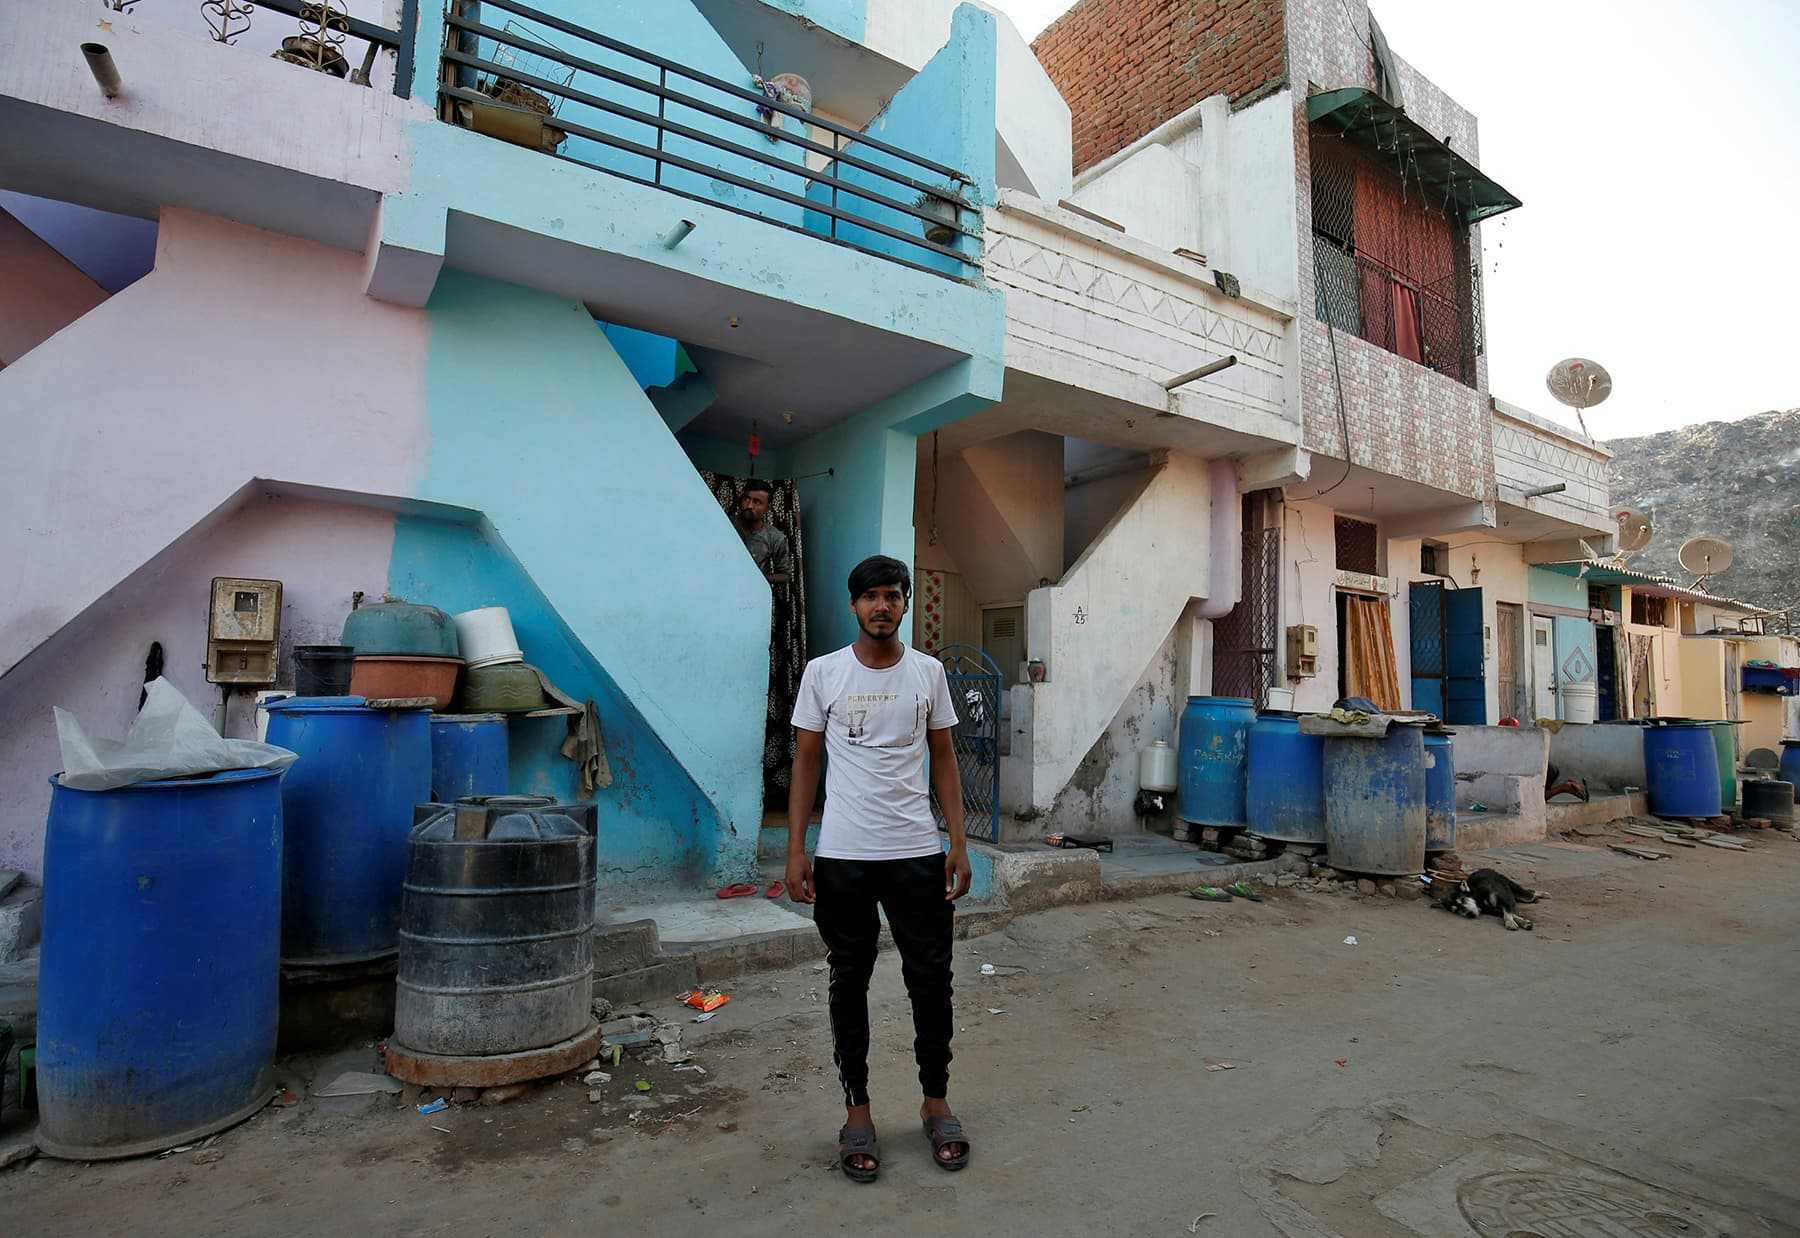 Mohammad Rafiq, 18, poses outside his house in Ahmedabad, April 12. — Reuters